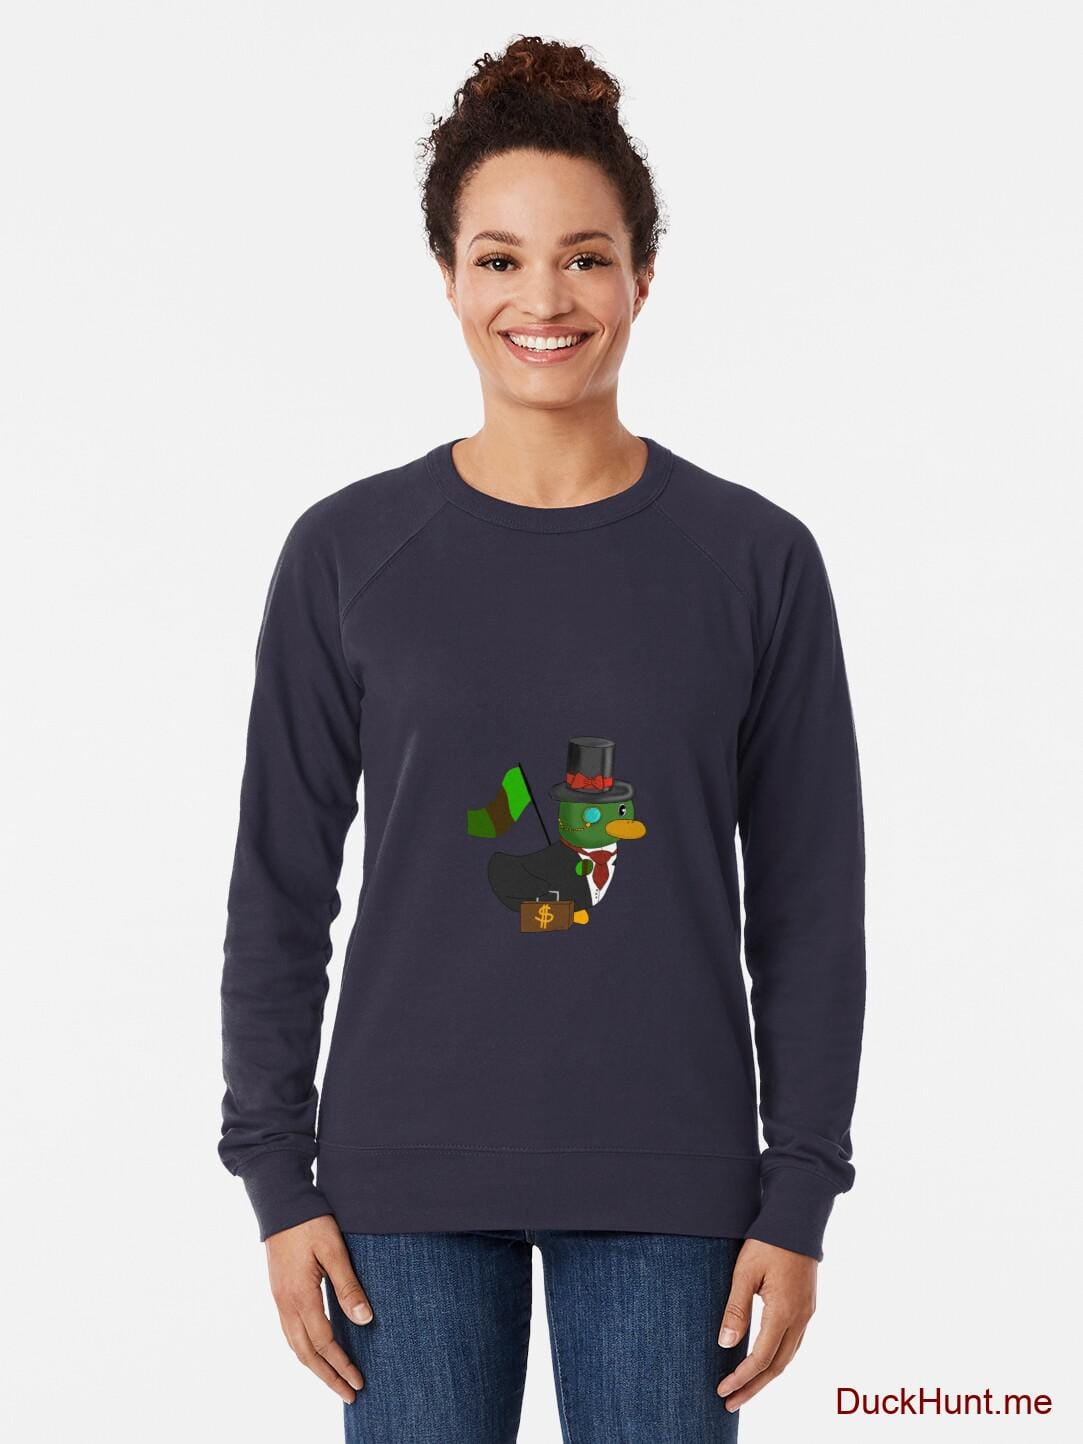 Golden Duck Navy Lightweight Sweatshirt alternative image 1